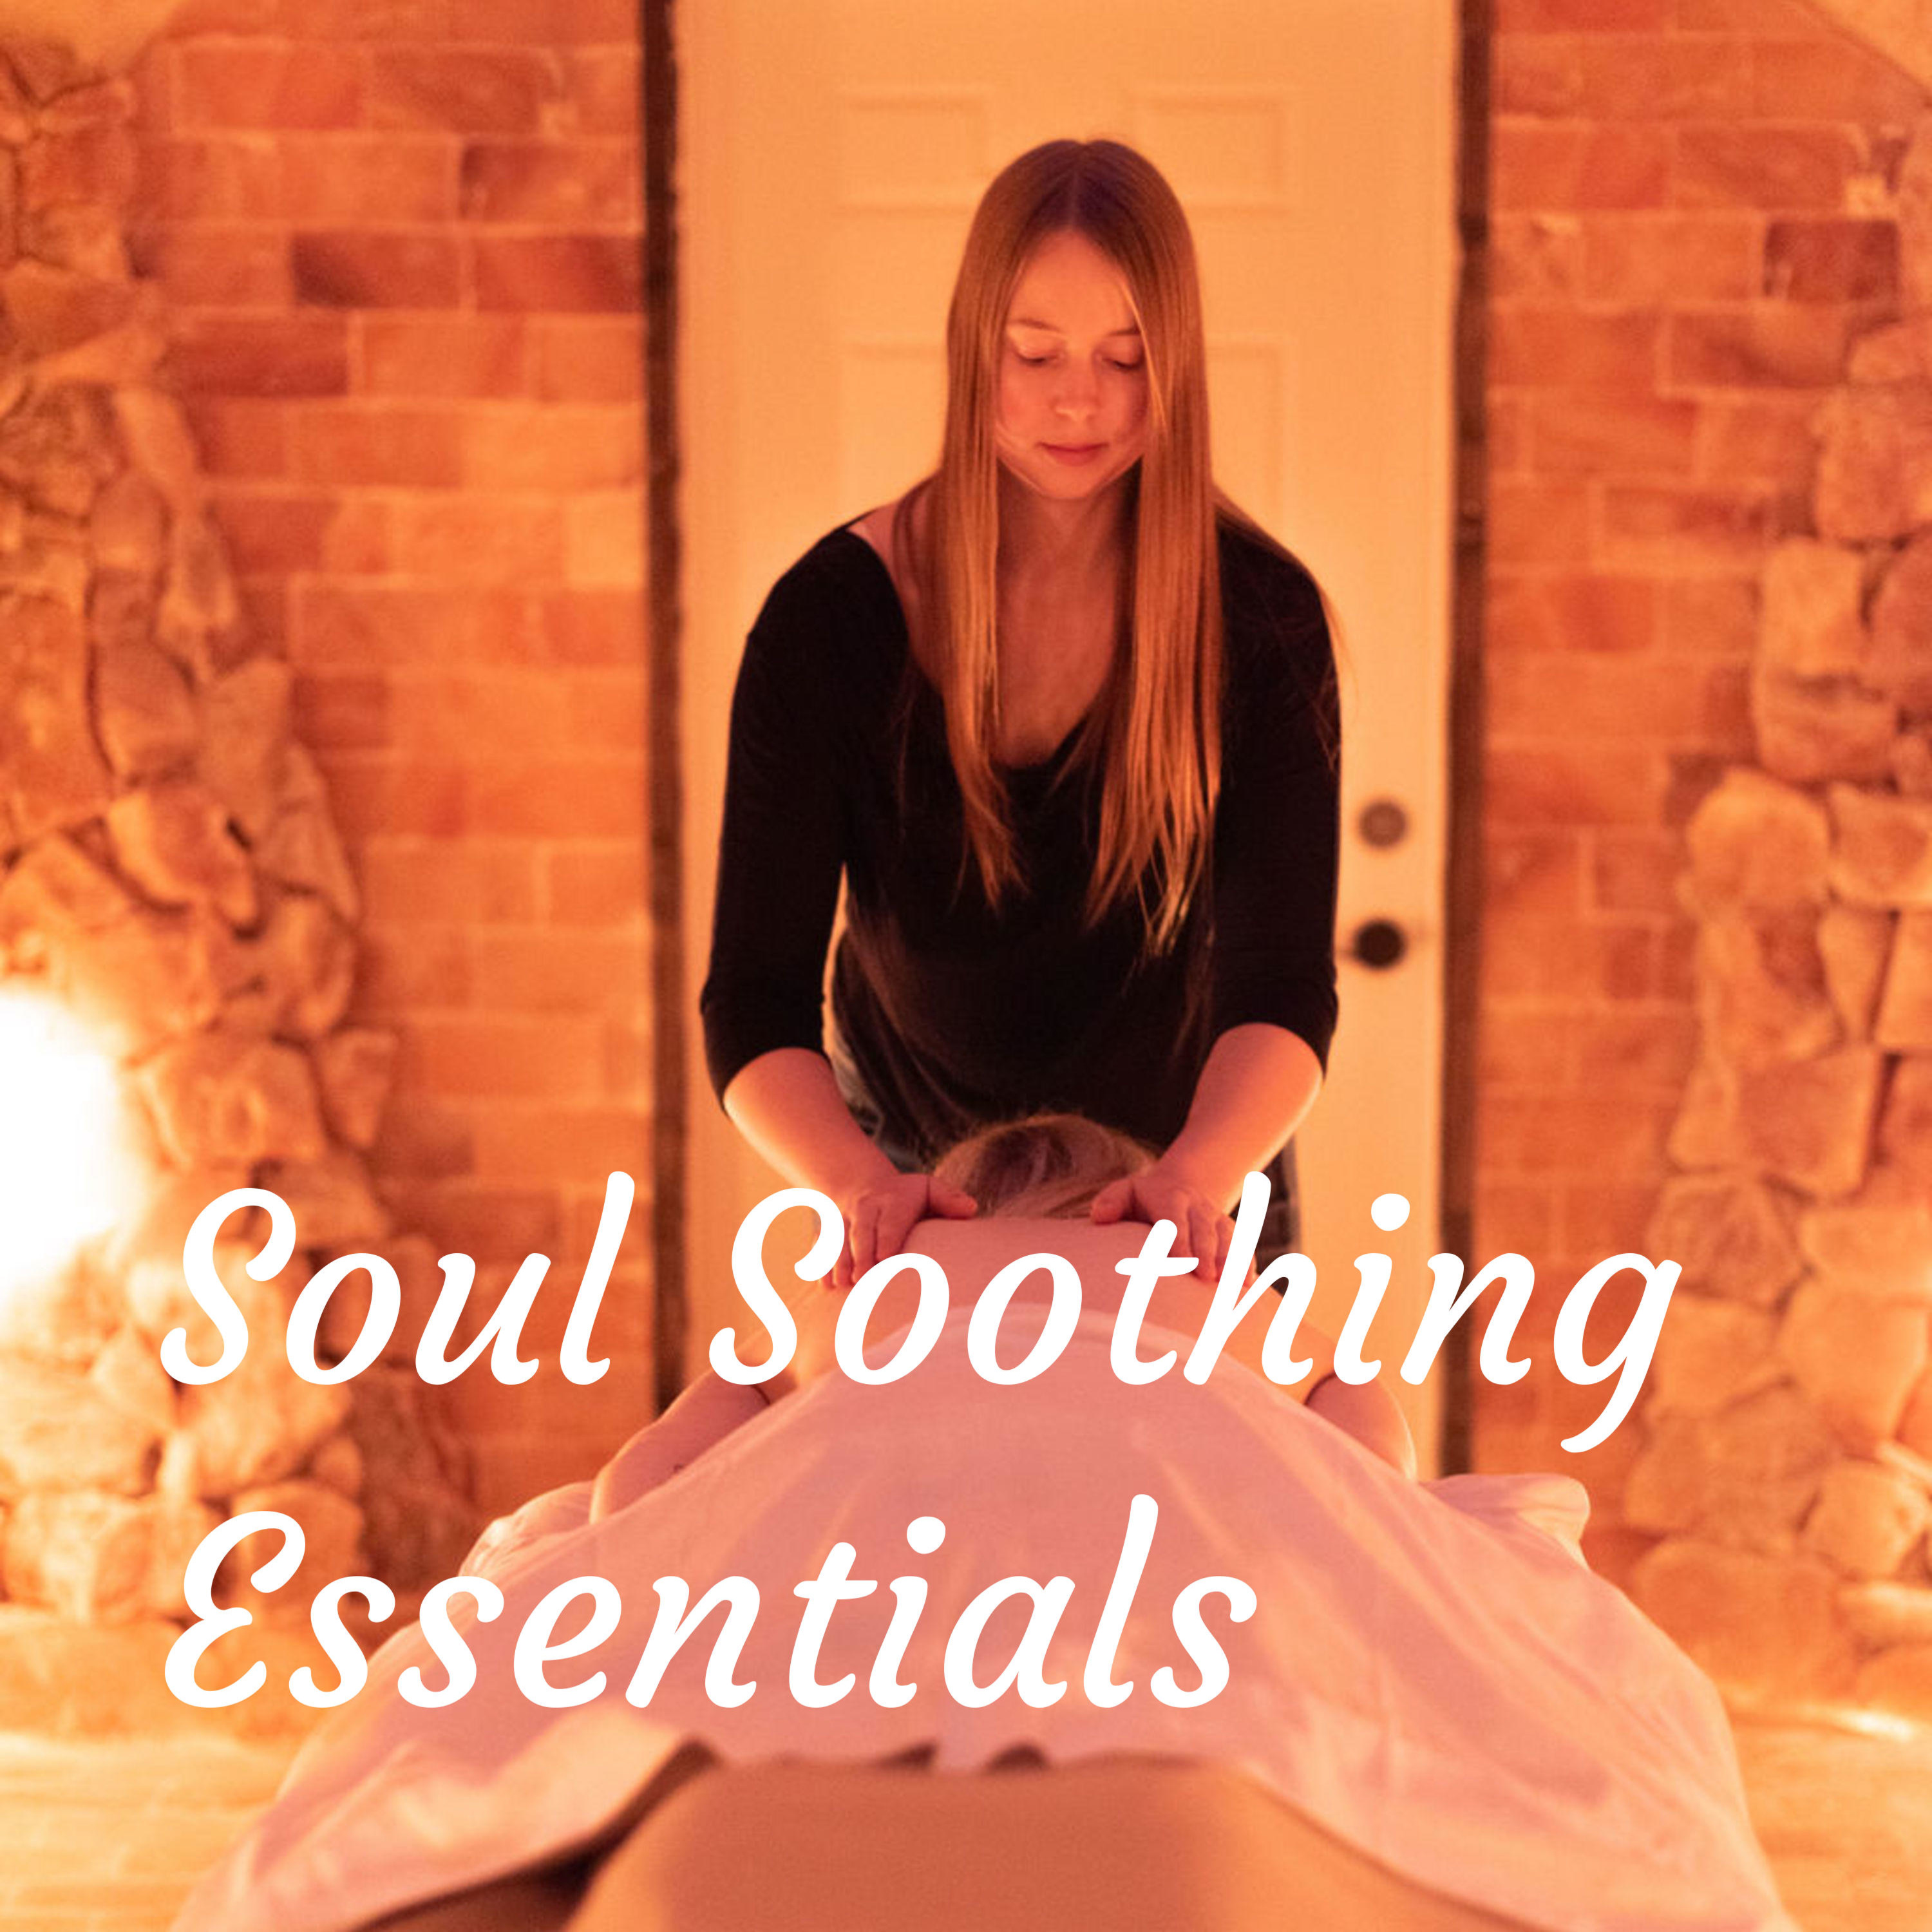 Soul Soothing Essentials